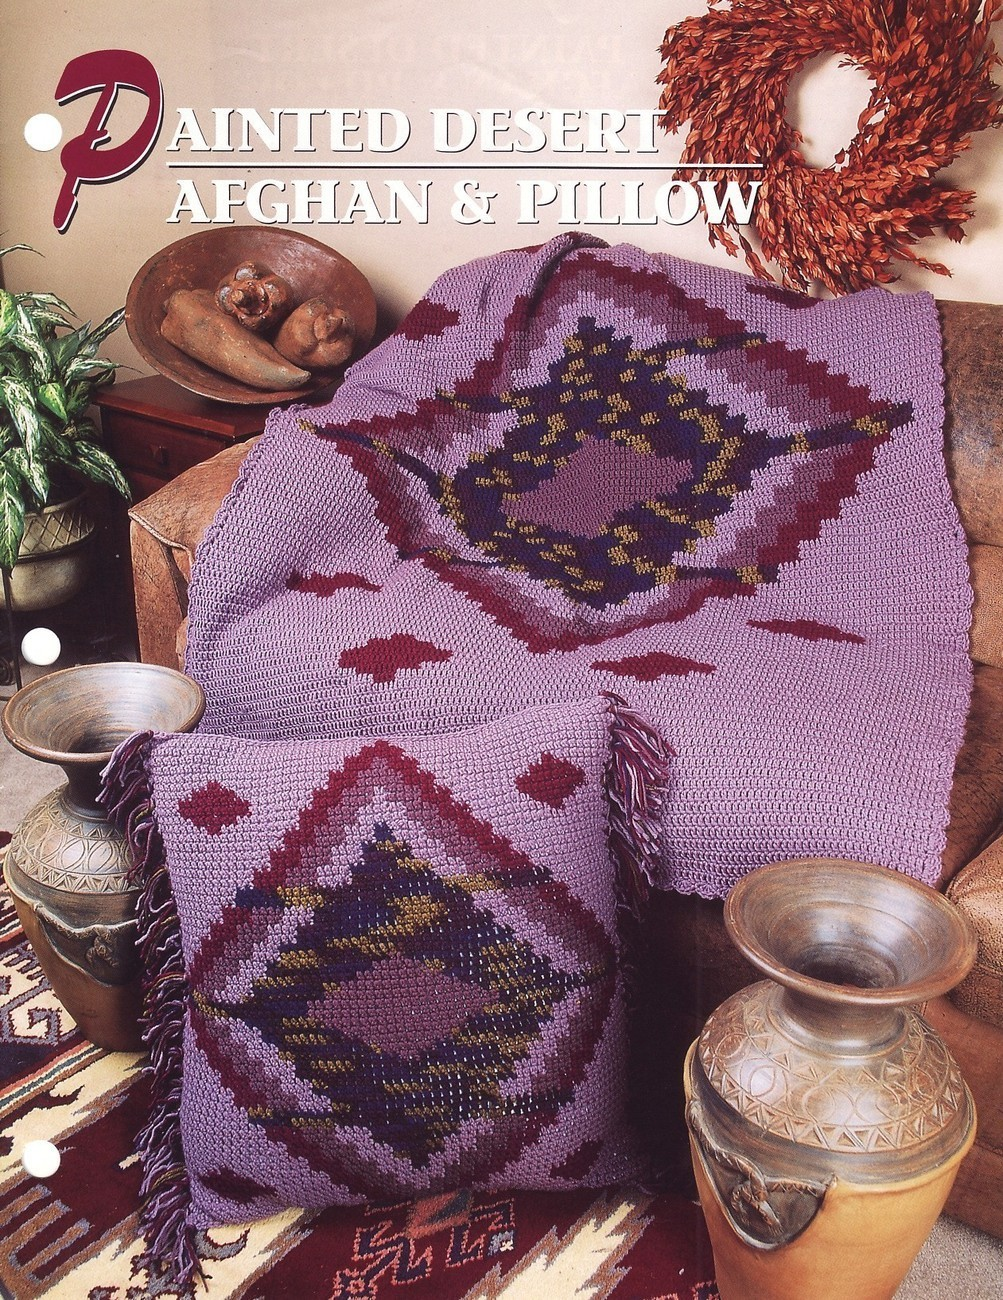 Easy To Crochet Afghan Patterns | Beginner Crochet Afghan Patterns